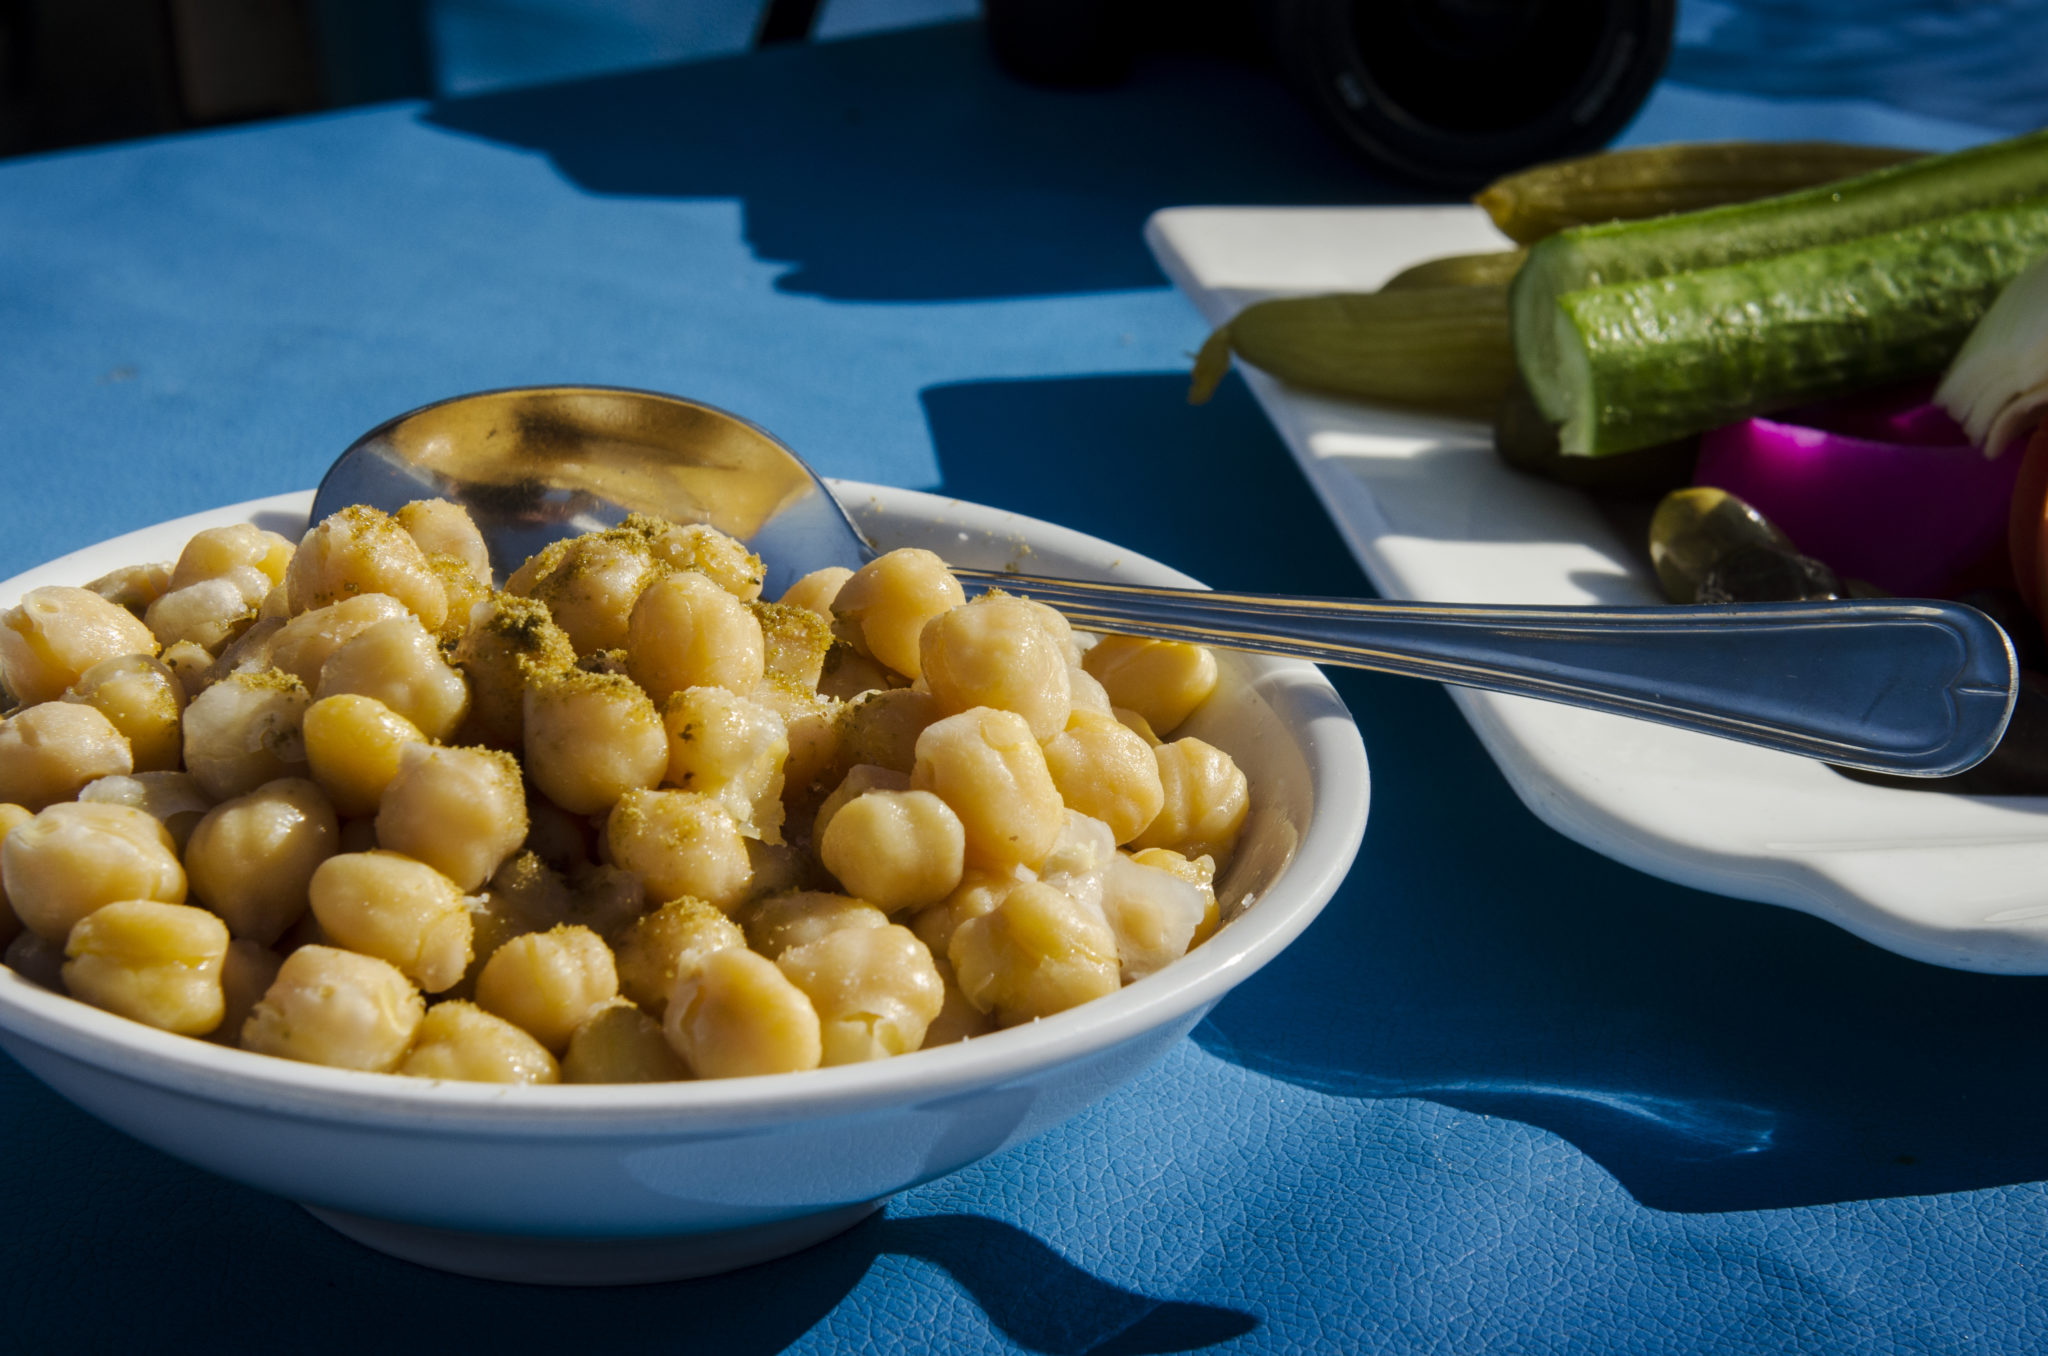 Things-to-do-in-Lebanon-chickpeas